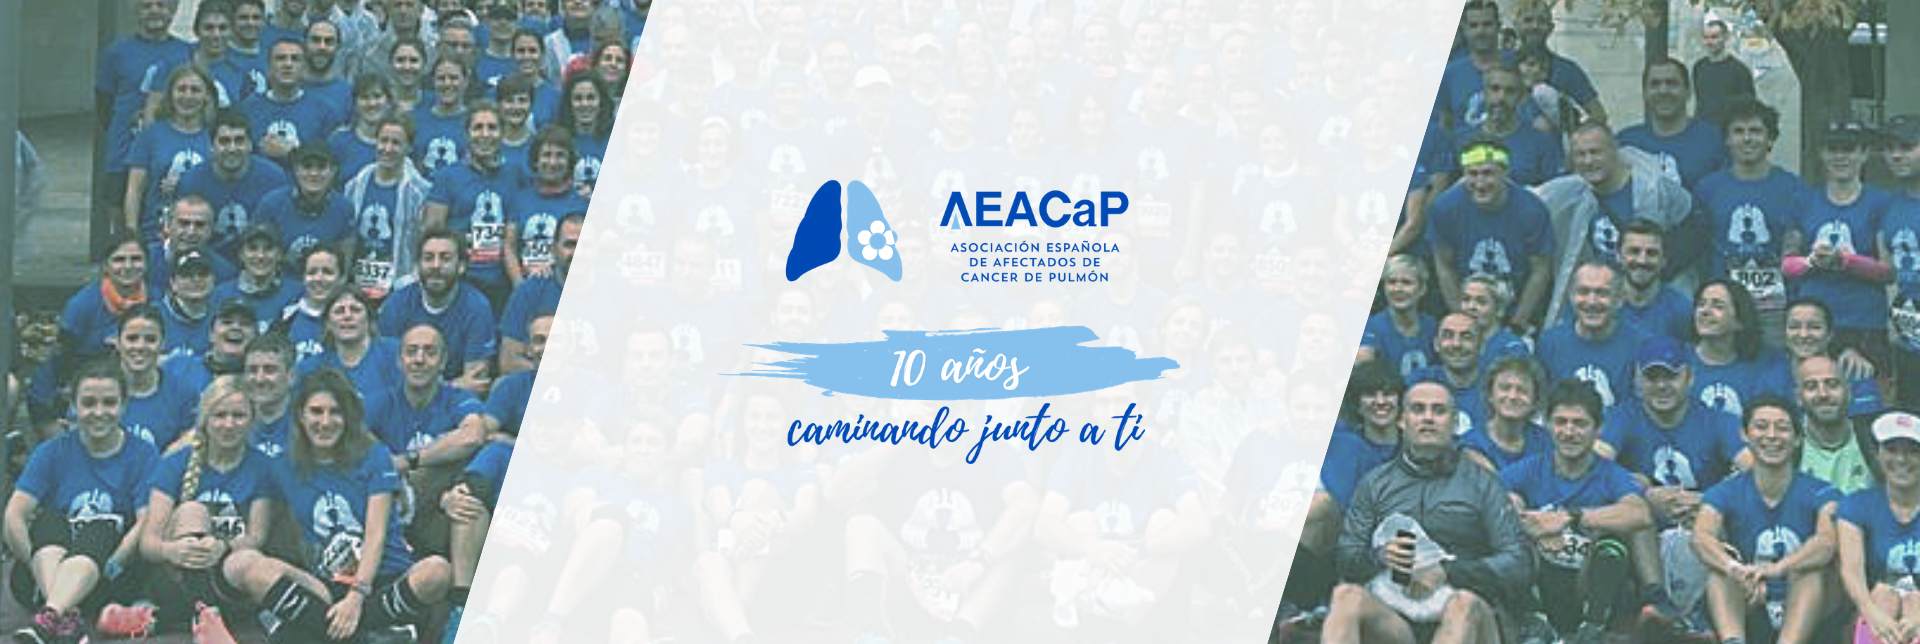 AEACAP_slide_WEB